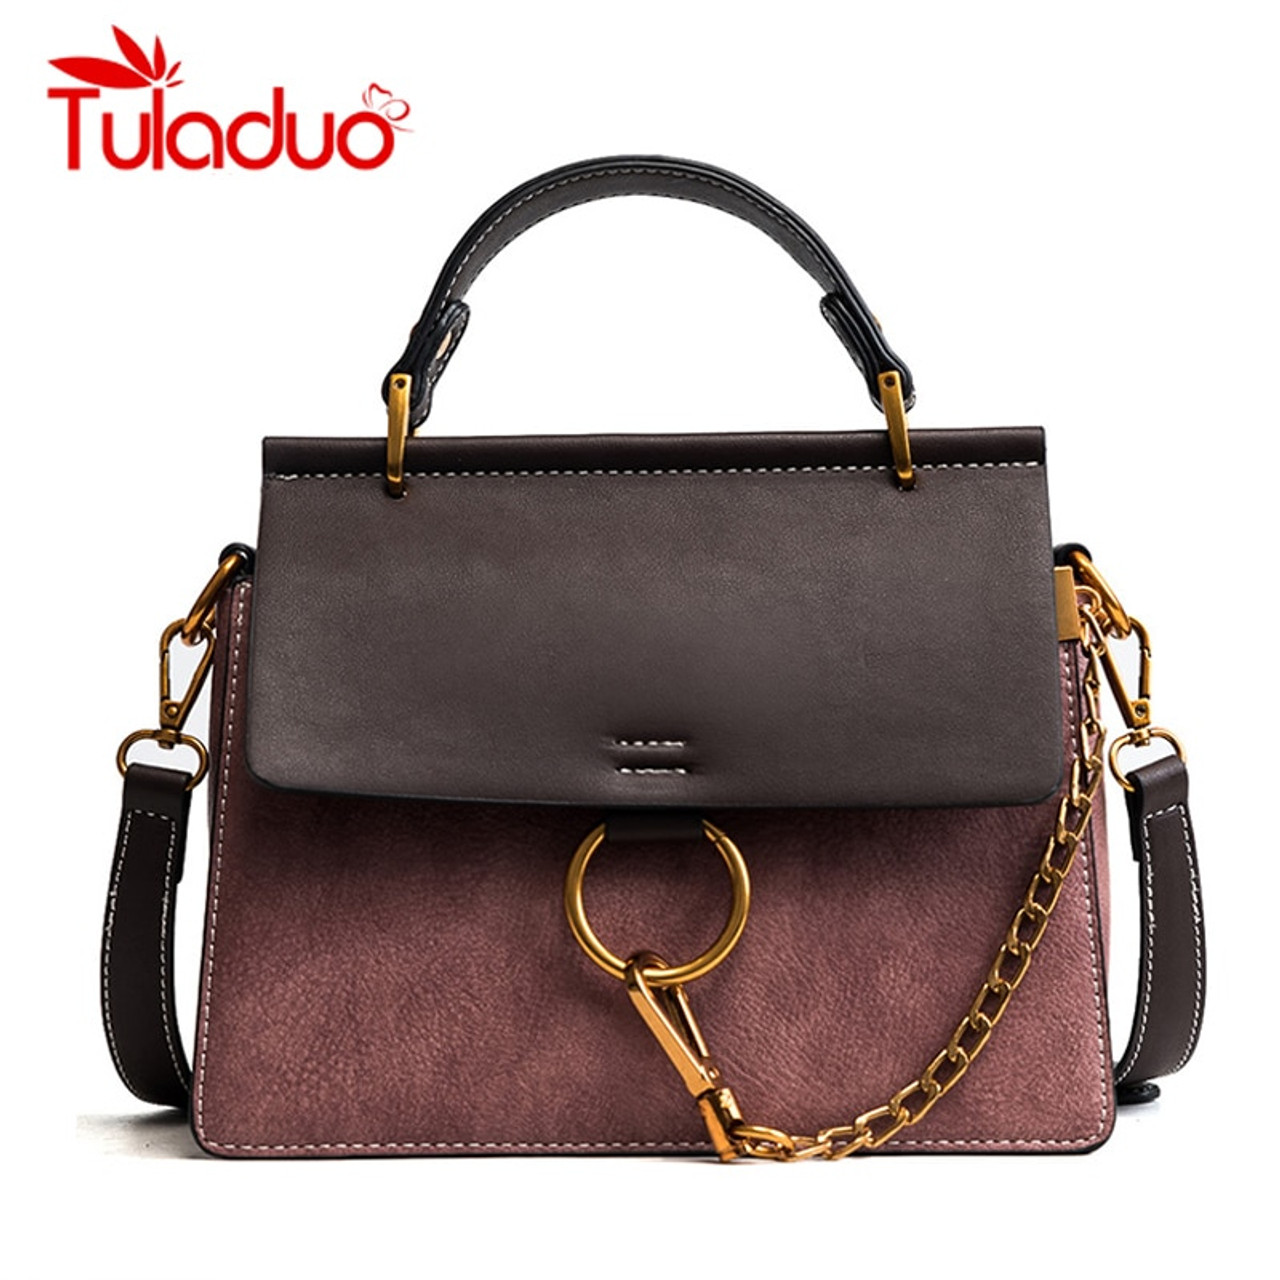 bc93c44d0e Tuladuo Women Messenger Bags New Luxury Brand Ladies Shoulder Bags High  Quality Designer Chain Handbags Flap Crossbody Bags